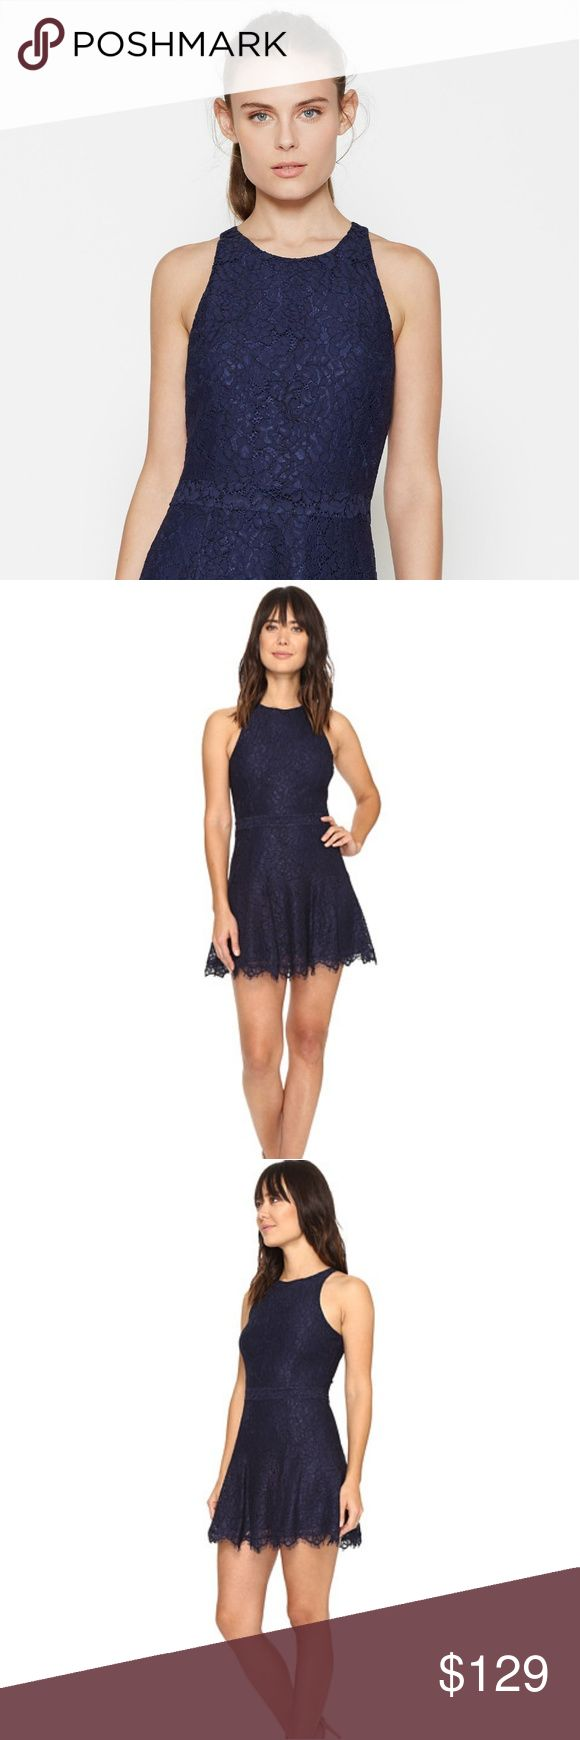 Joie | Adisa Lace Dress Navy lace makes a run for staple status with this party-perfect dress from Joie. Flaunting a body-hugging fit and flirty flounced hem, this confidently coquettish style boasts the staying power of a bonafide wardrobe classic.  Round neck Sleeveless Flounced scalloped hem Concealed back zip with hook-and-eye closure Lined  Thanks for stopping by and shopping my closet  🛍 Reasonable OFFERS always welcome 🛍  🎉Bundle & SAVE an extra 10% 🎉  📌 Let's be friends on IG…